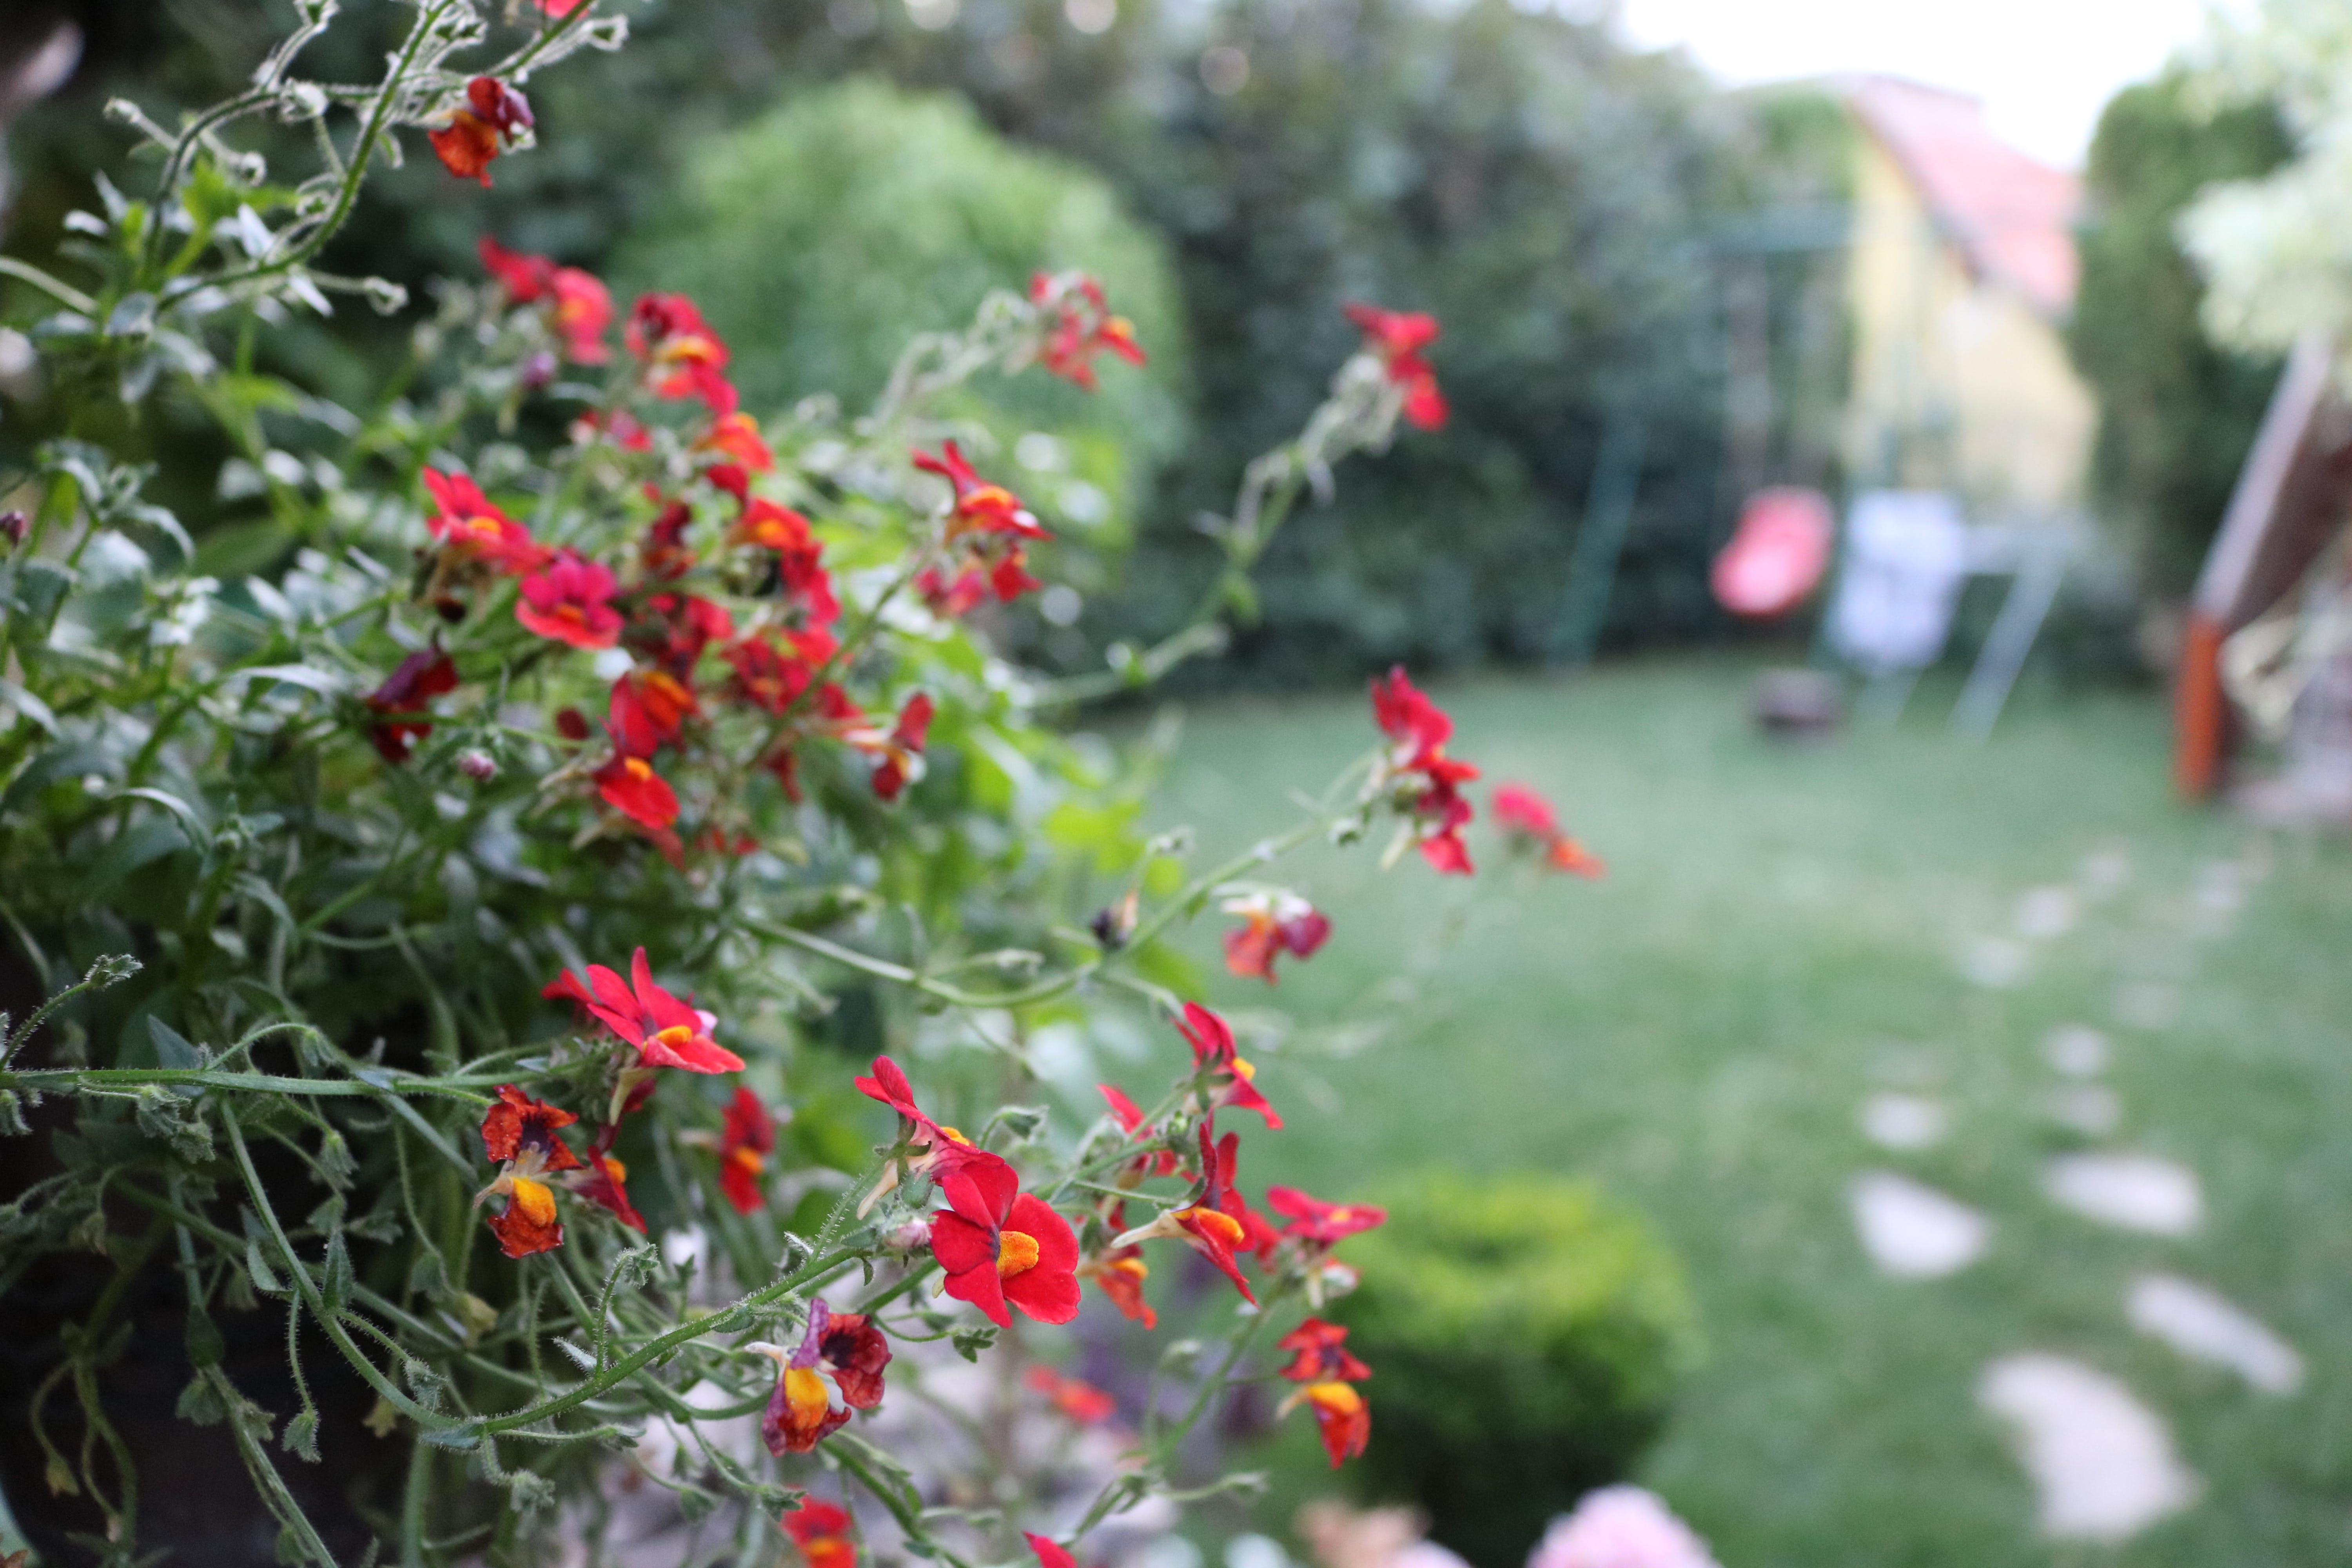 Red Flowers in Tilt Shift Photography